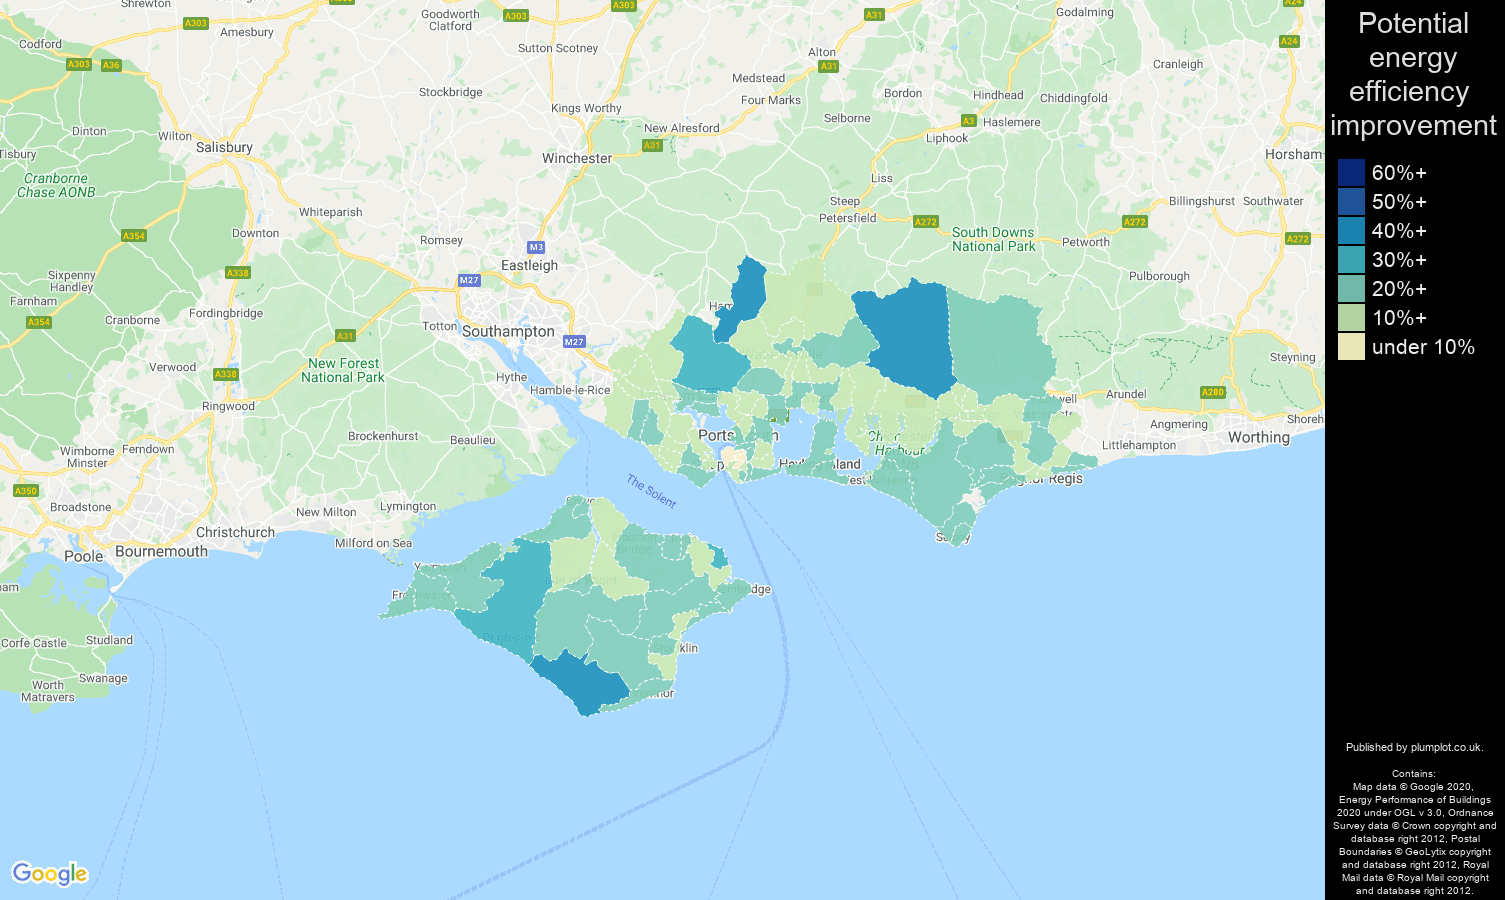 Portsmouth map of potential energy efficiency improvement of properties